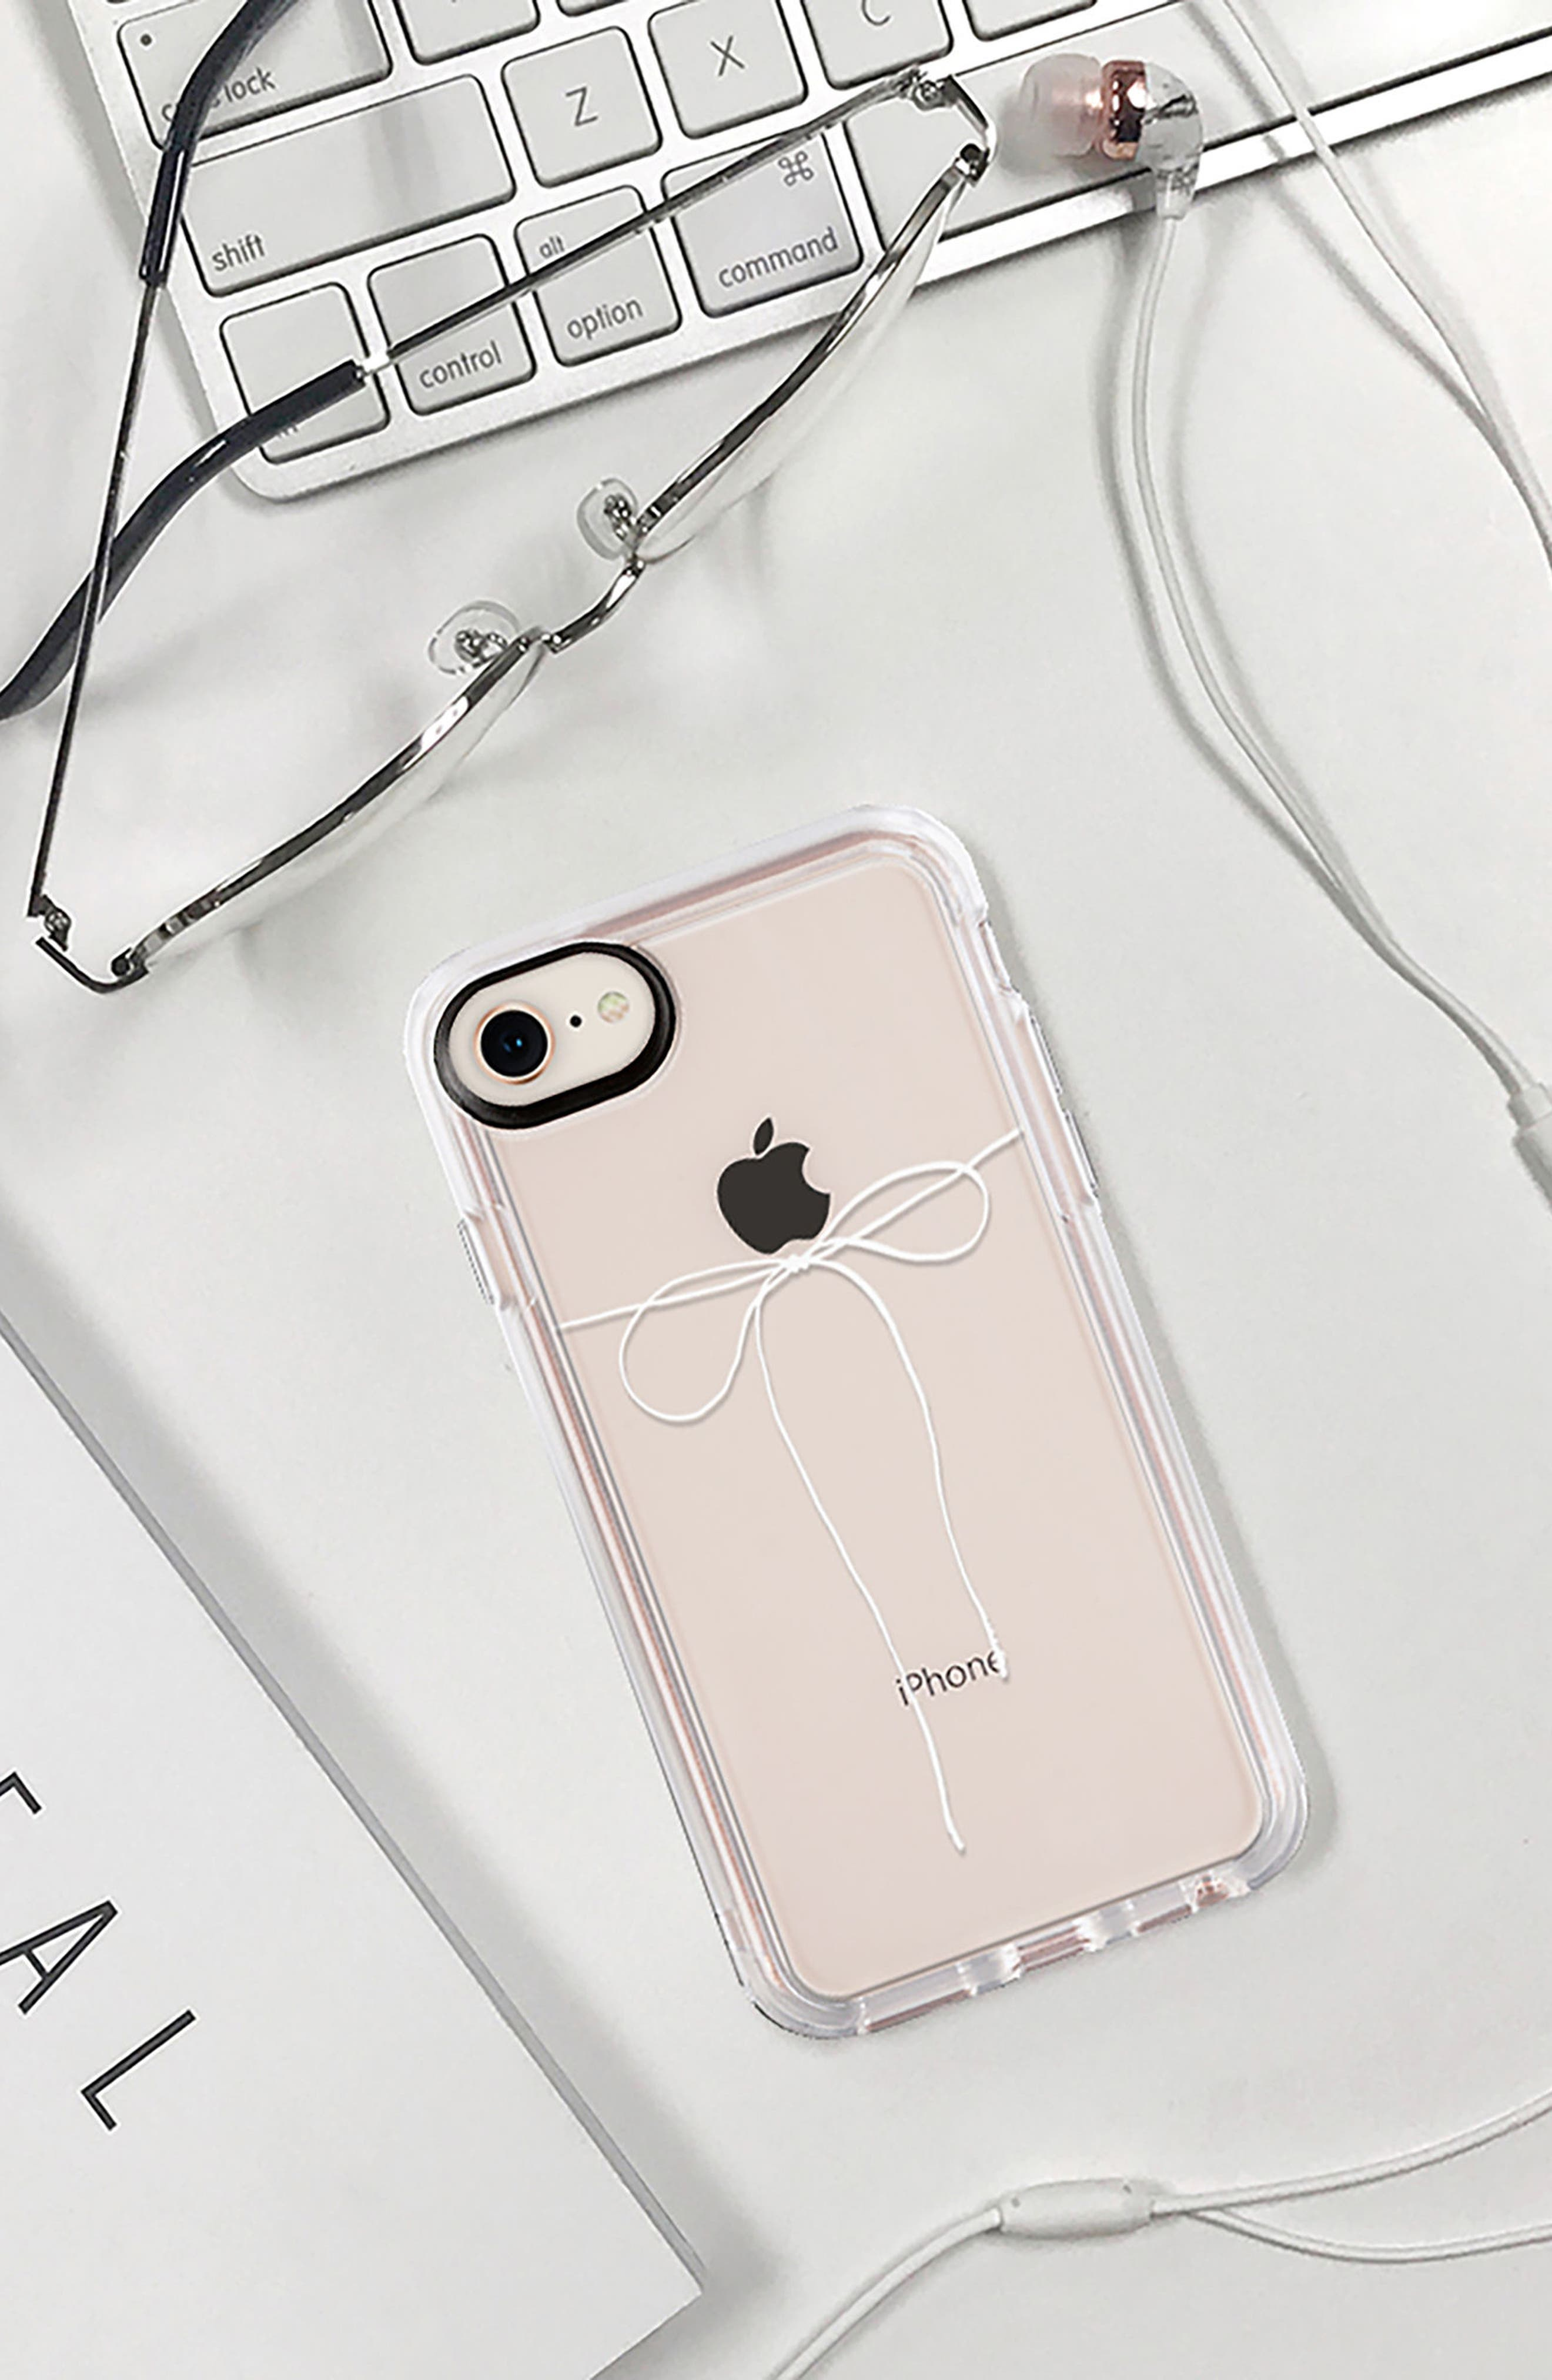 Take a Bow iPhone 7/8 & 7/8 Plus Case,                             Alternate thumbnail 8, color,                             CLEAR WHITE